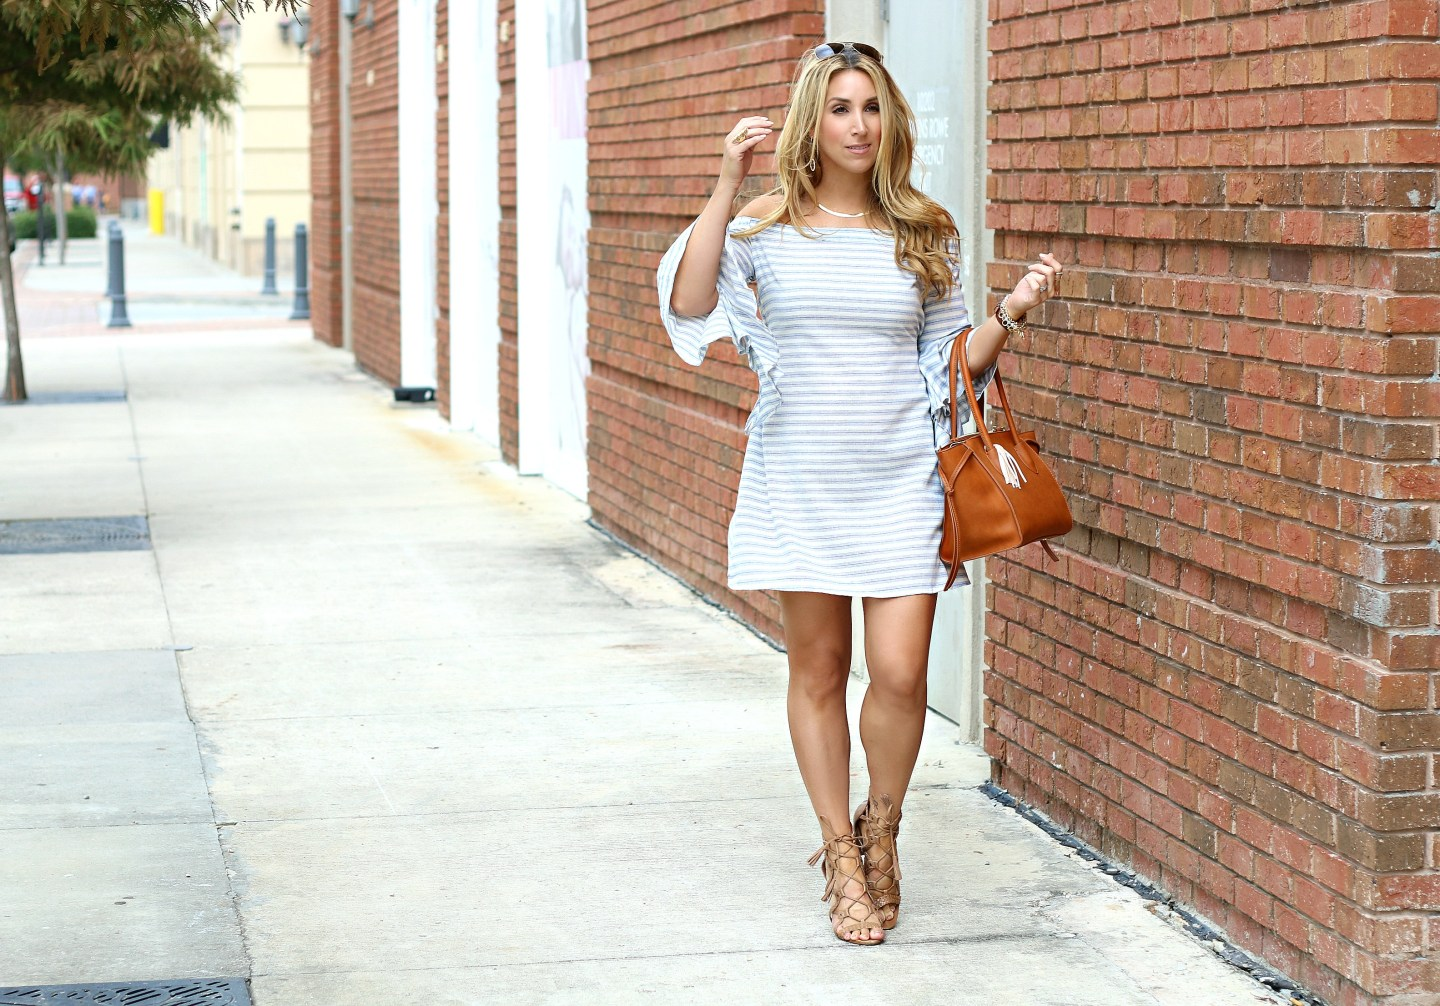 An Off the Shoulder Dress that Flatters